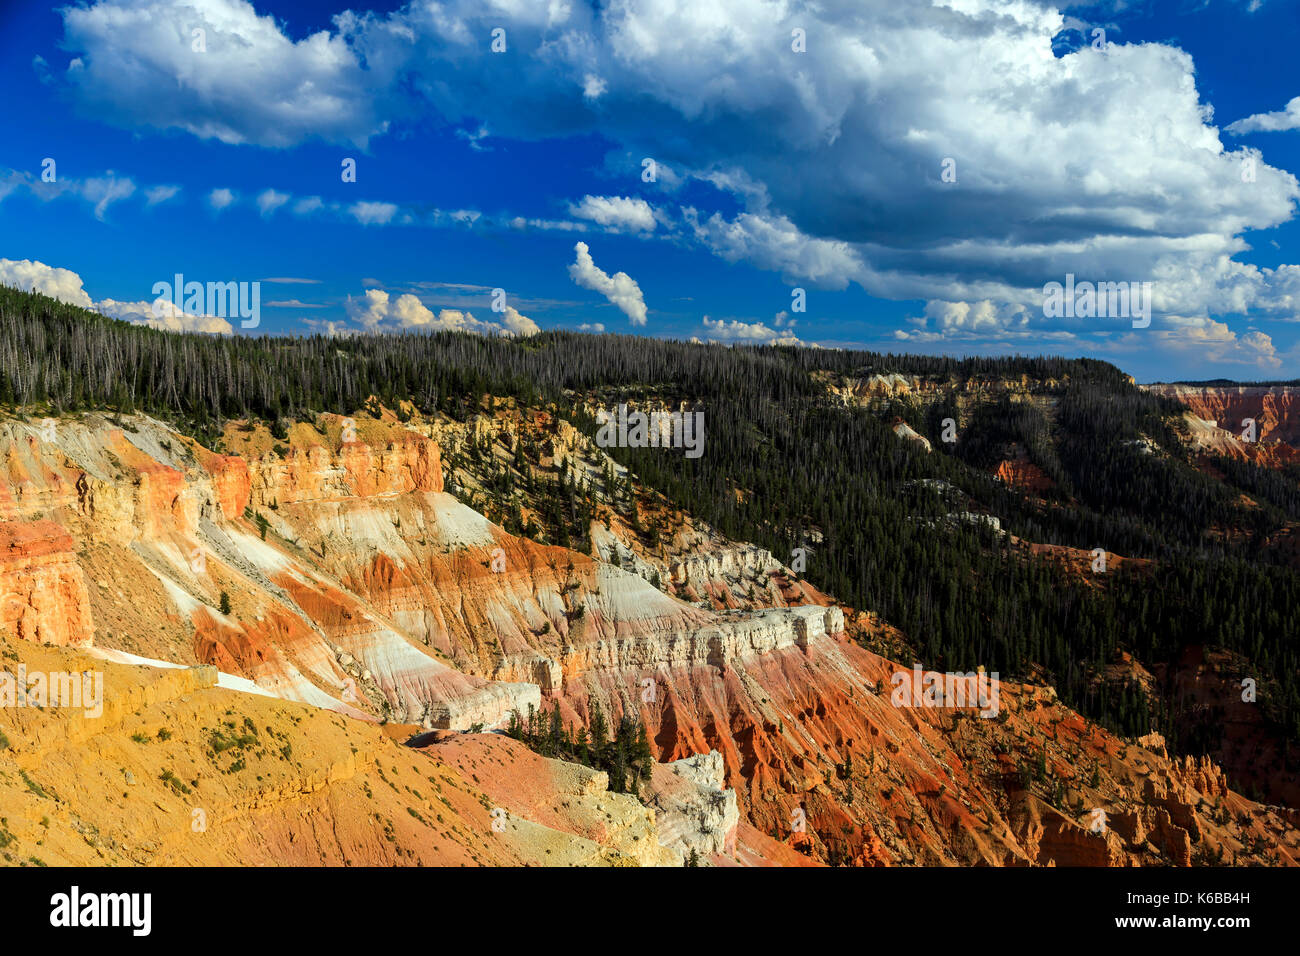 This is a view of the red rock formations and forested area of the amphitheater of Cedar Breaks National Monument, Utah, USA. - Stock Image